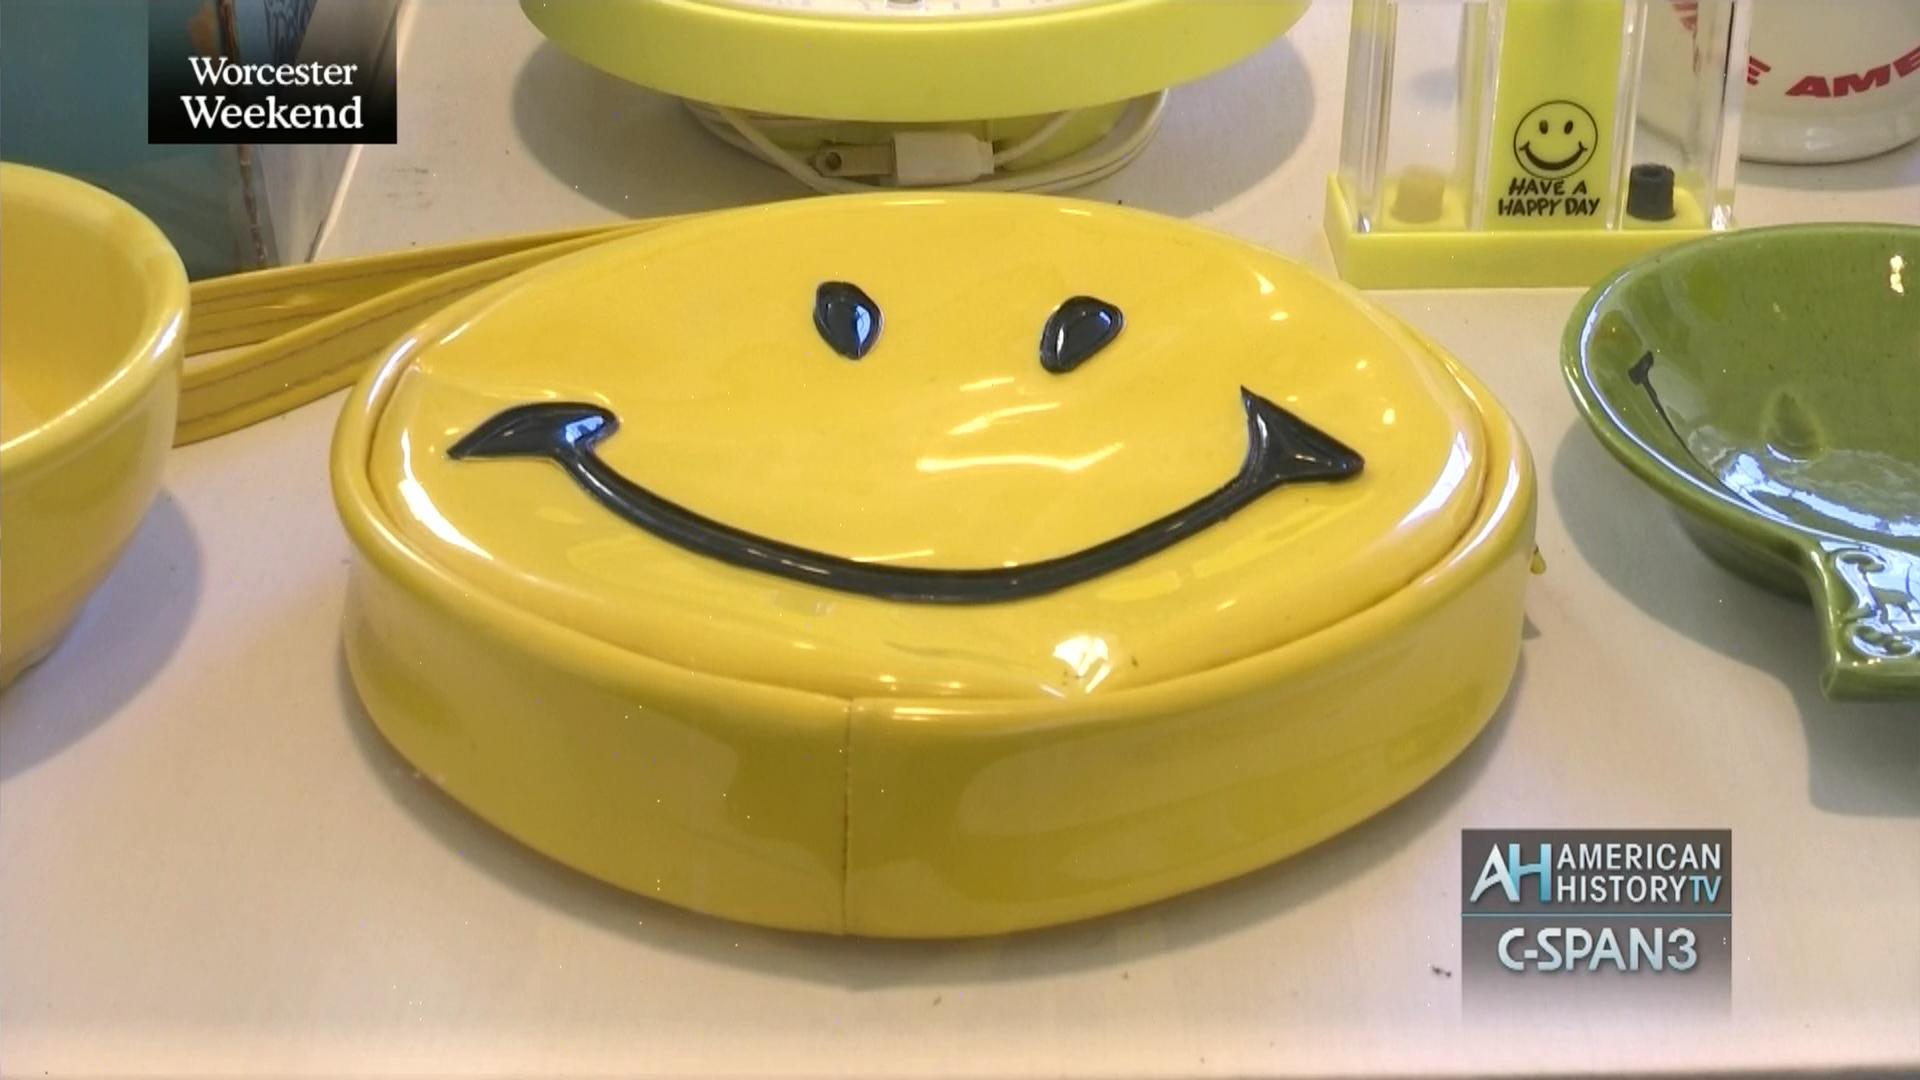 b6396d931764 History of the Smiley Face Symbol | C-SPAN.org